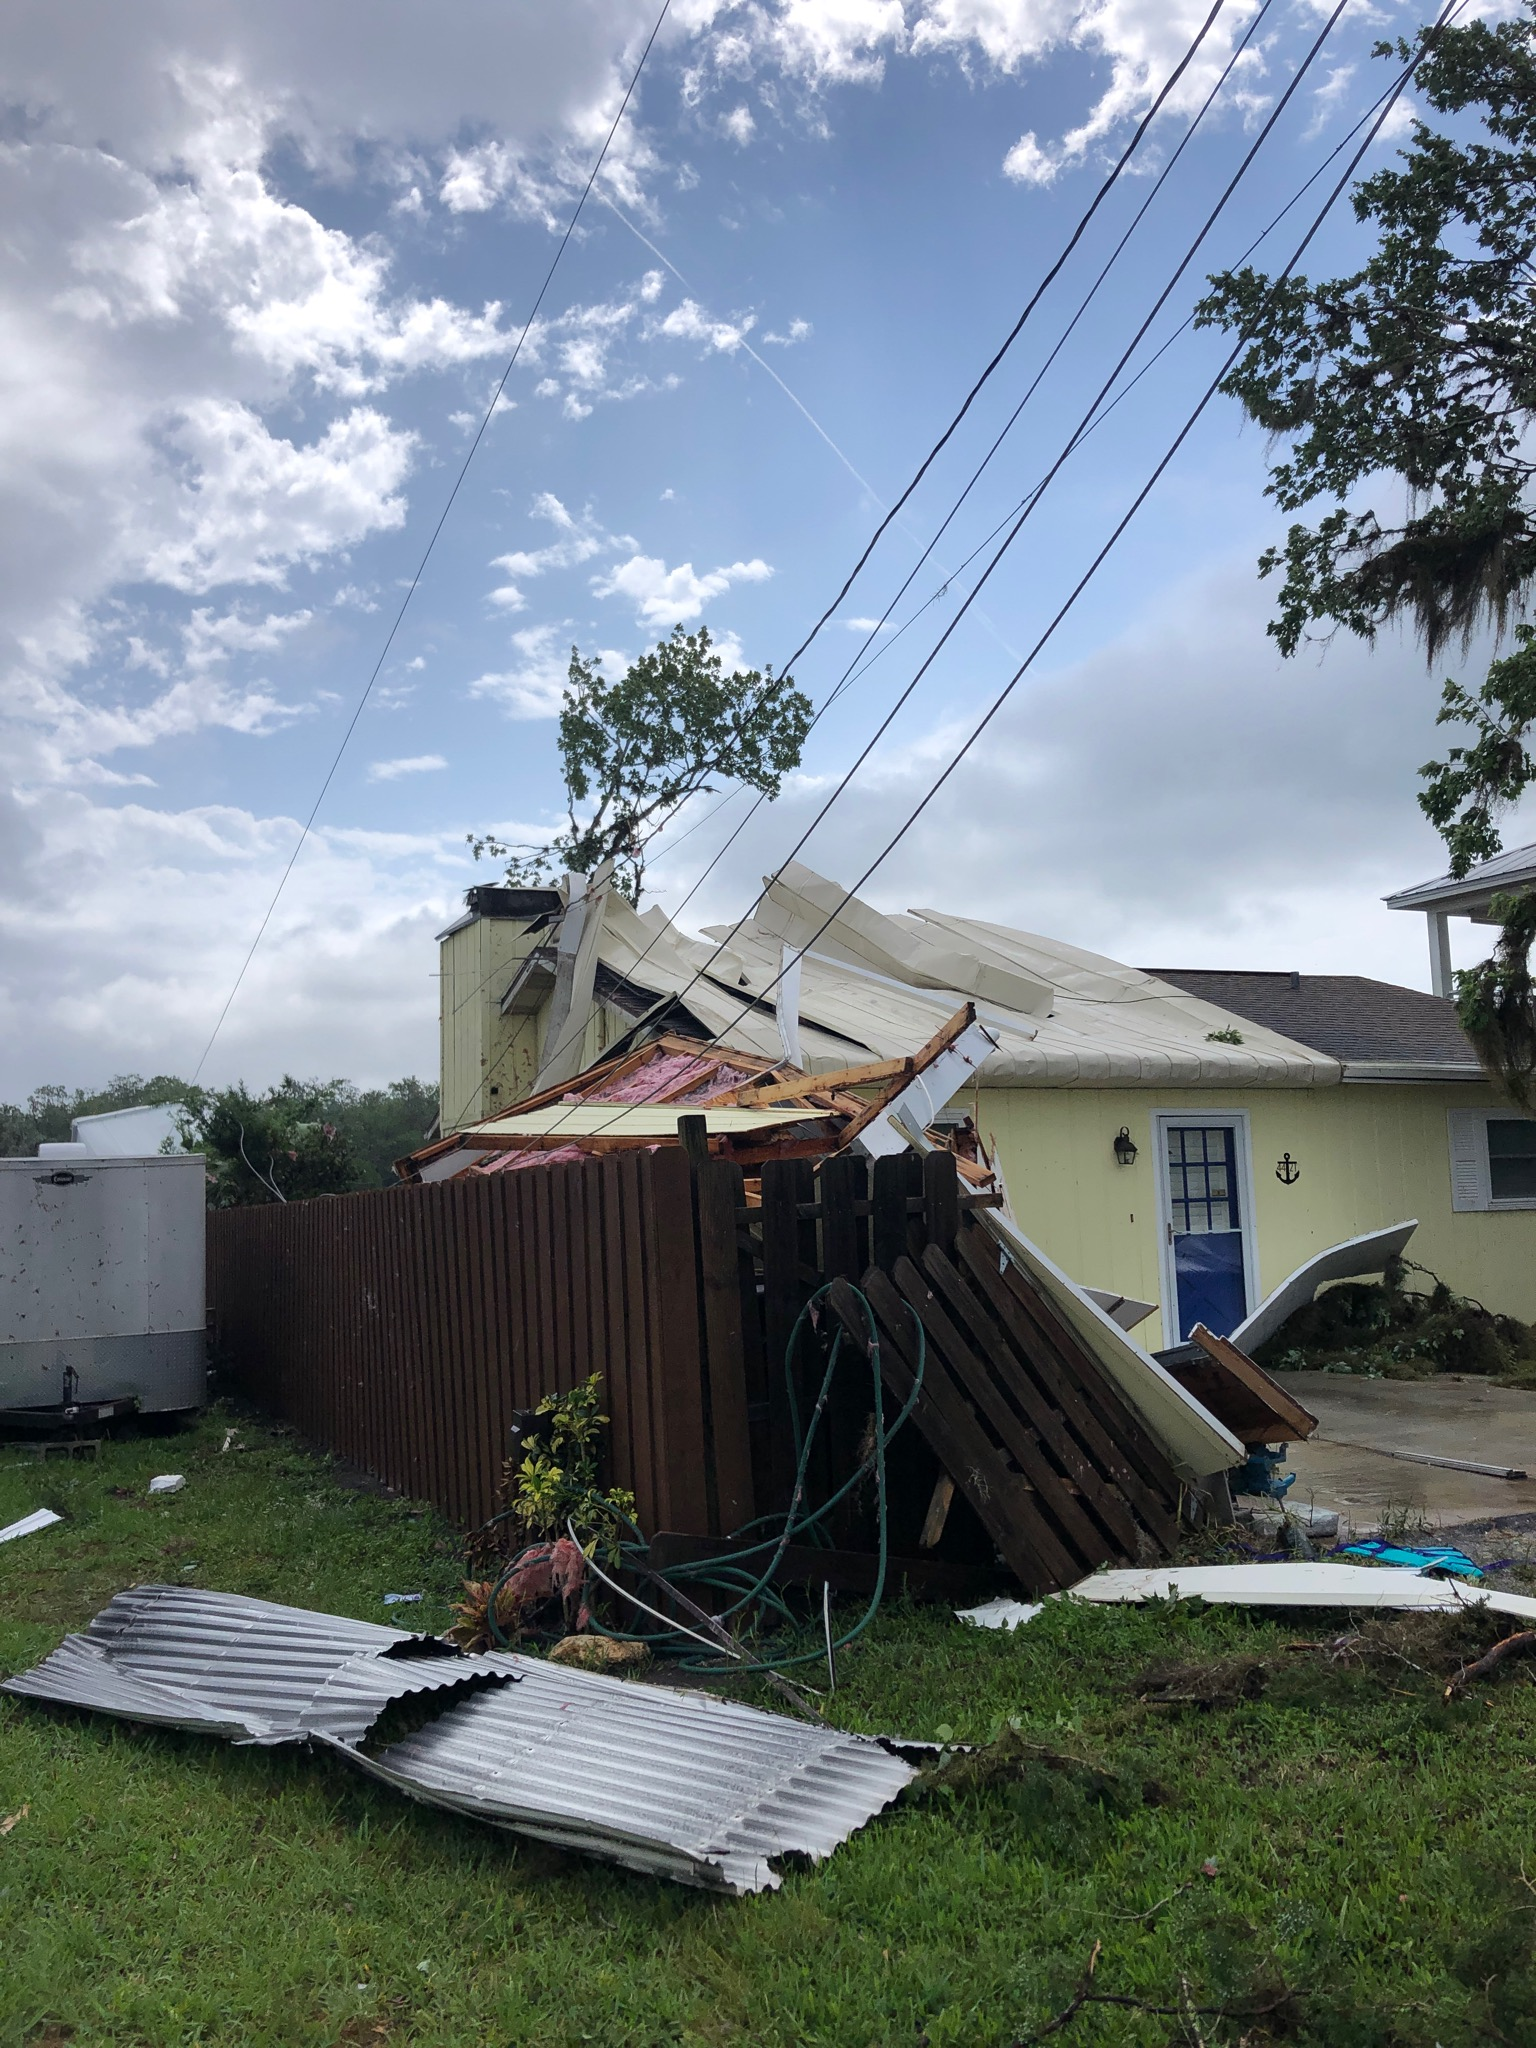 [Linked Image from wfla.com]